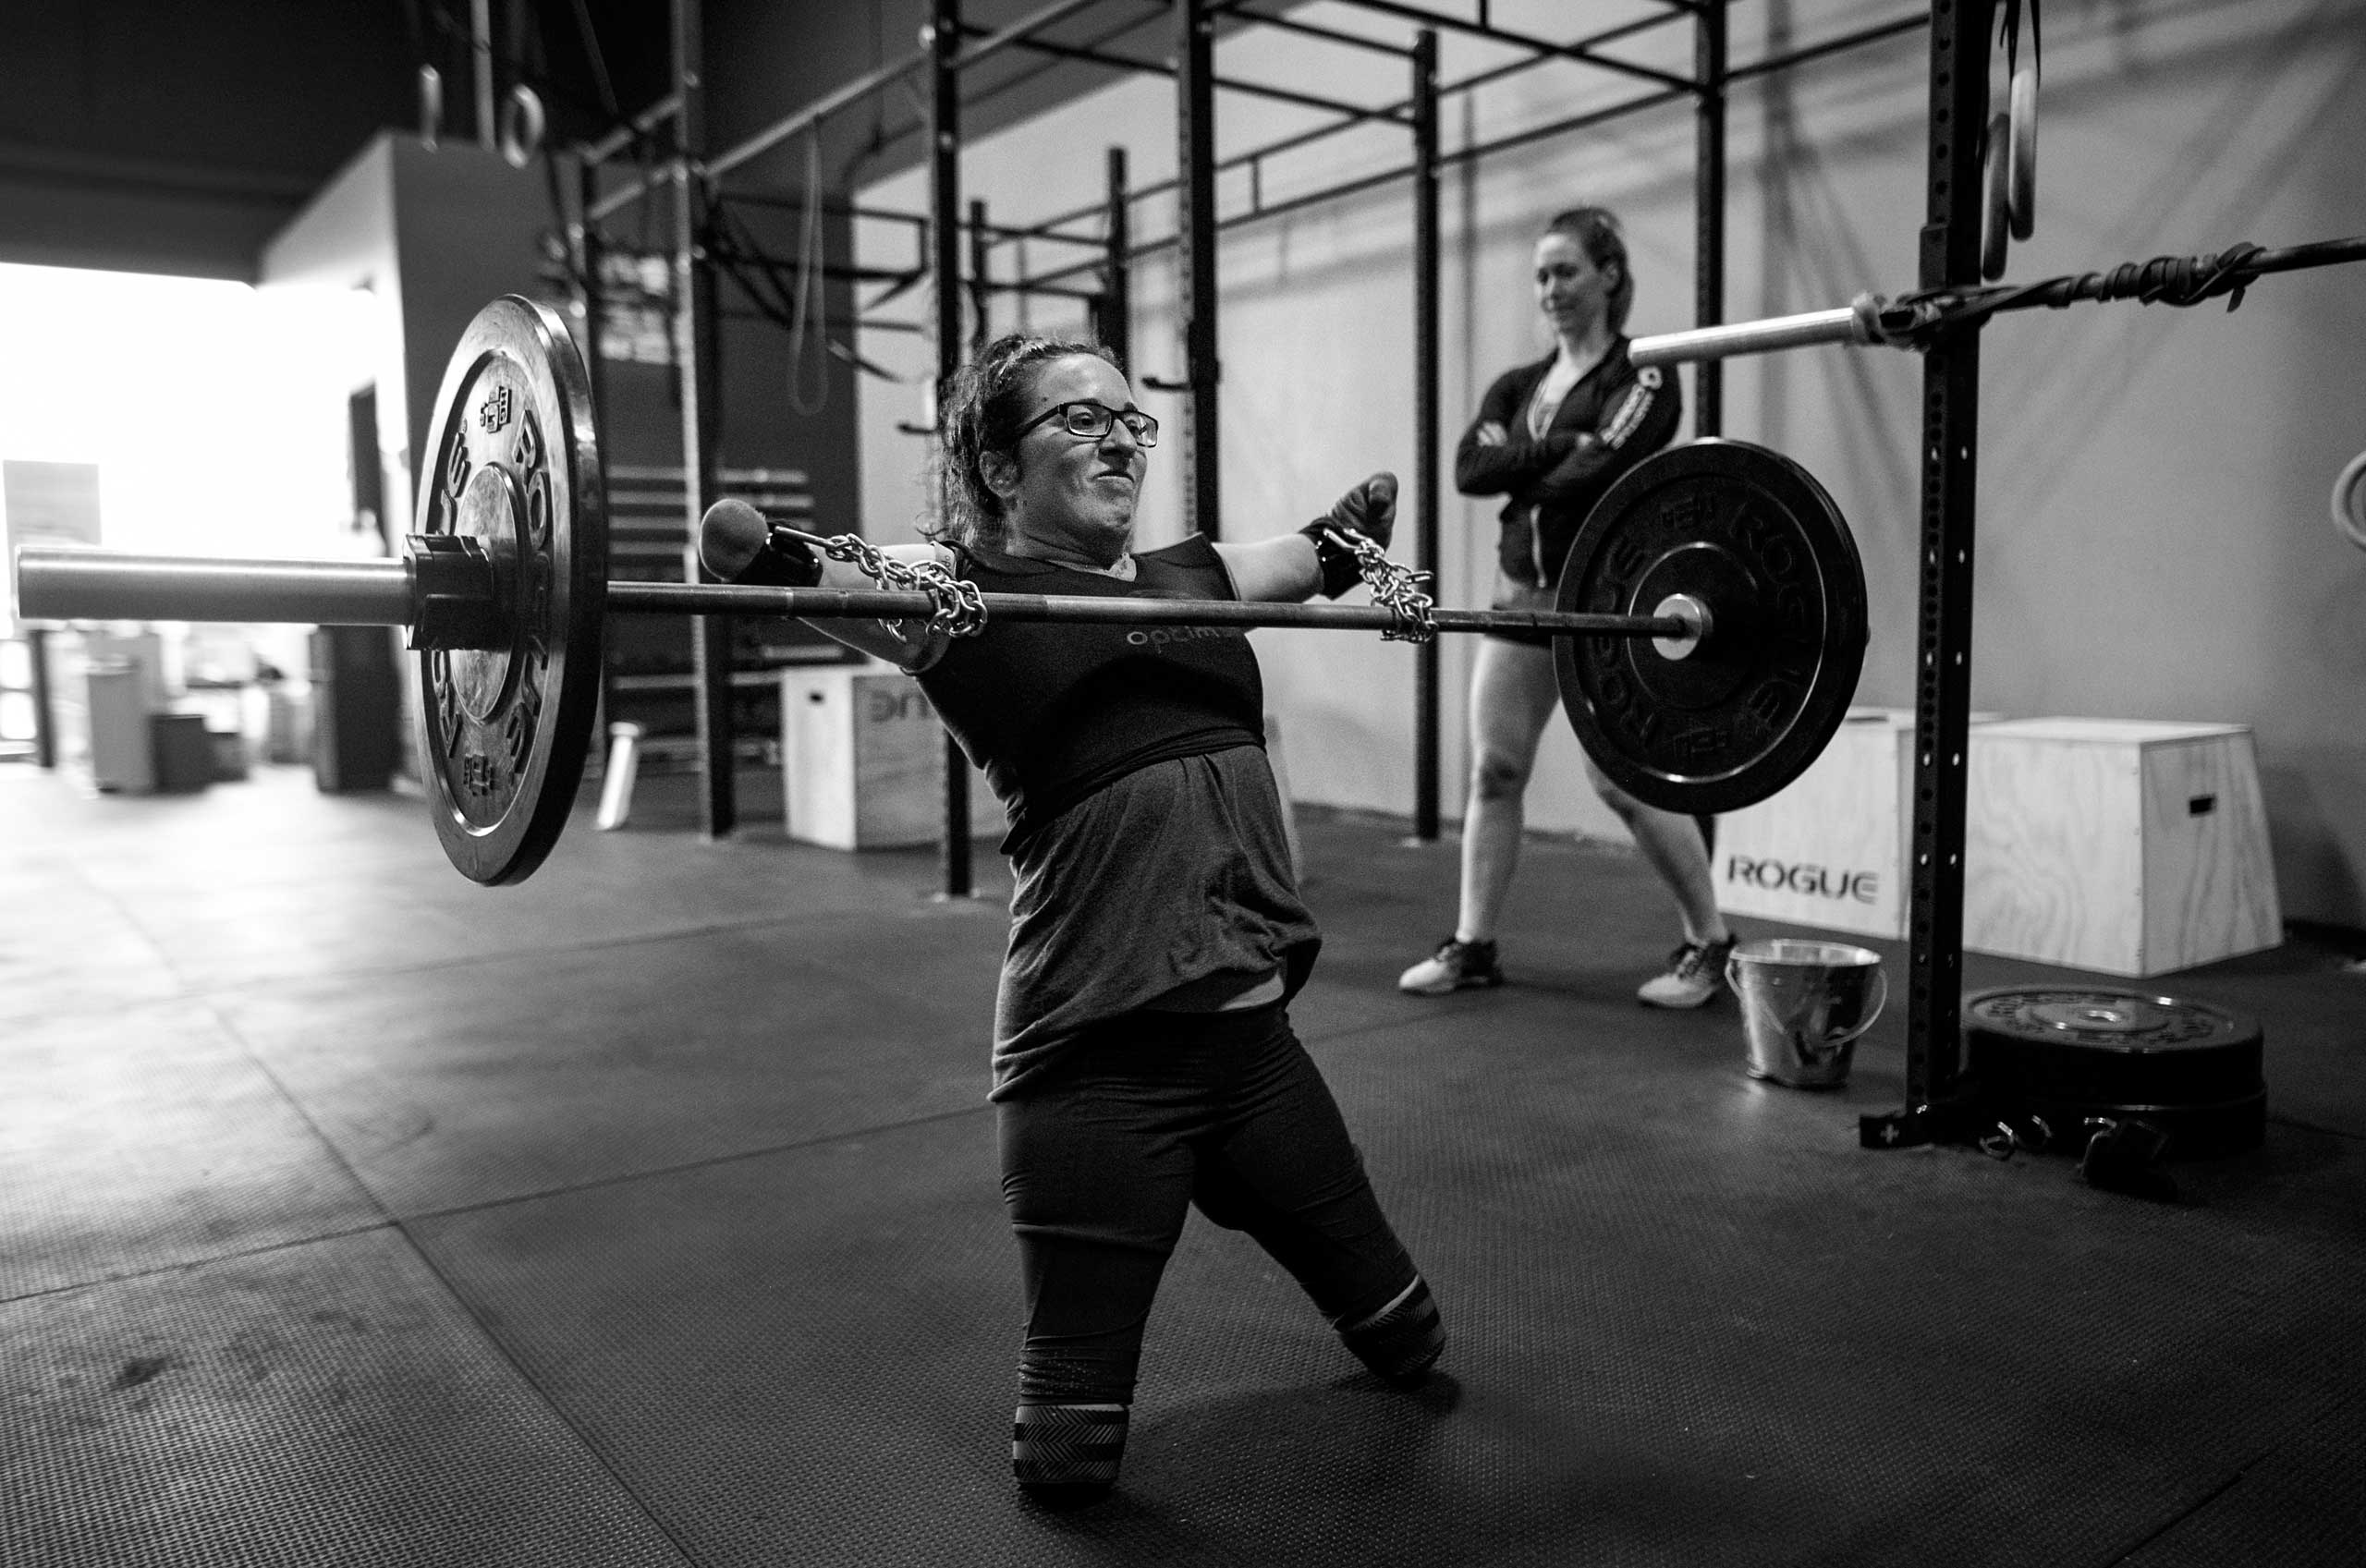 With the aid of chains purchased at the hardware store and deadlift straps, Lindsay performs snatches under the watchful eye of coach and co-owner of CrossFit OnSide Jenny Jeffries in Halifax, Nova Scotia, Canada on July 8, 2016.